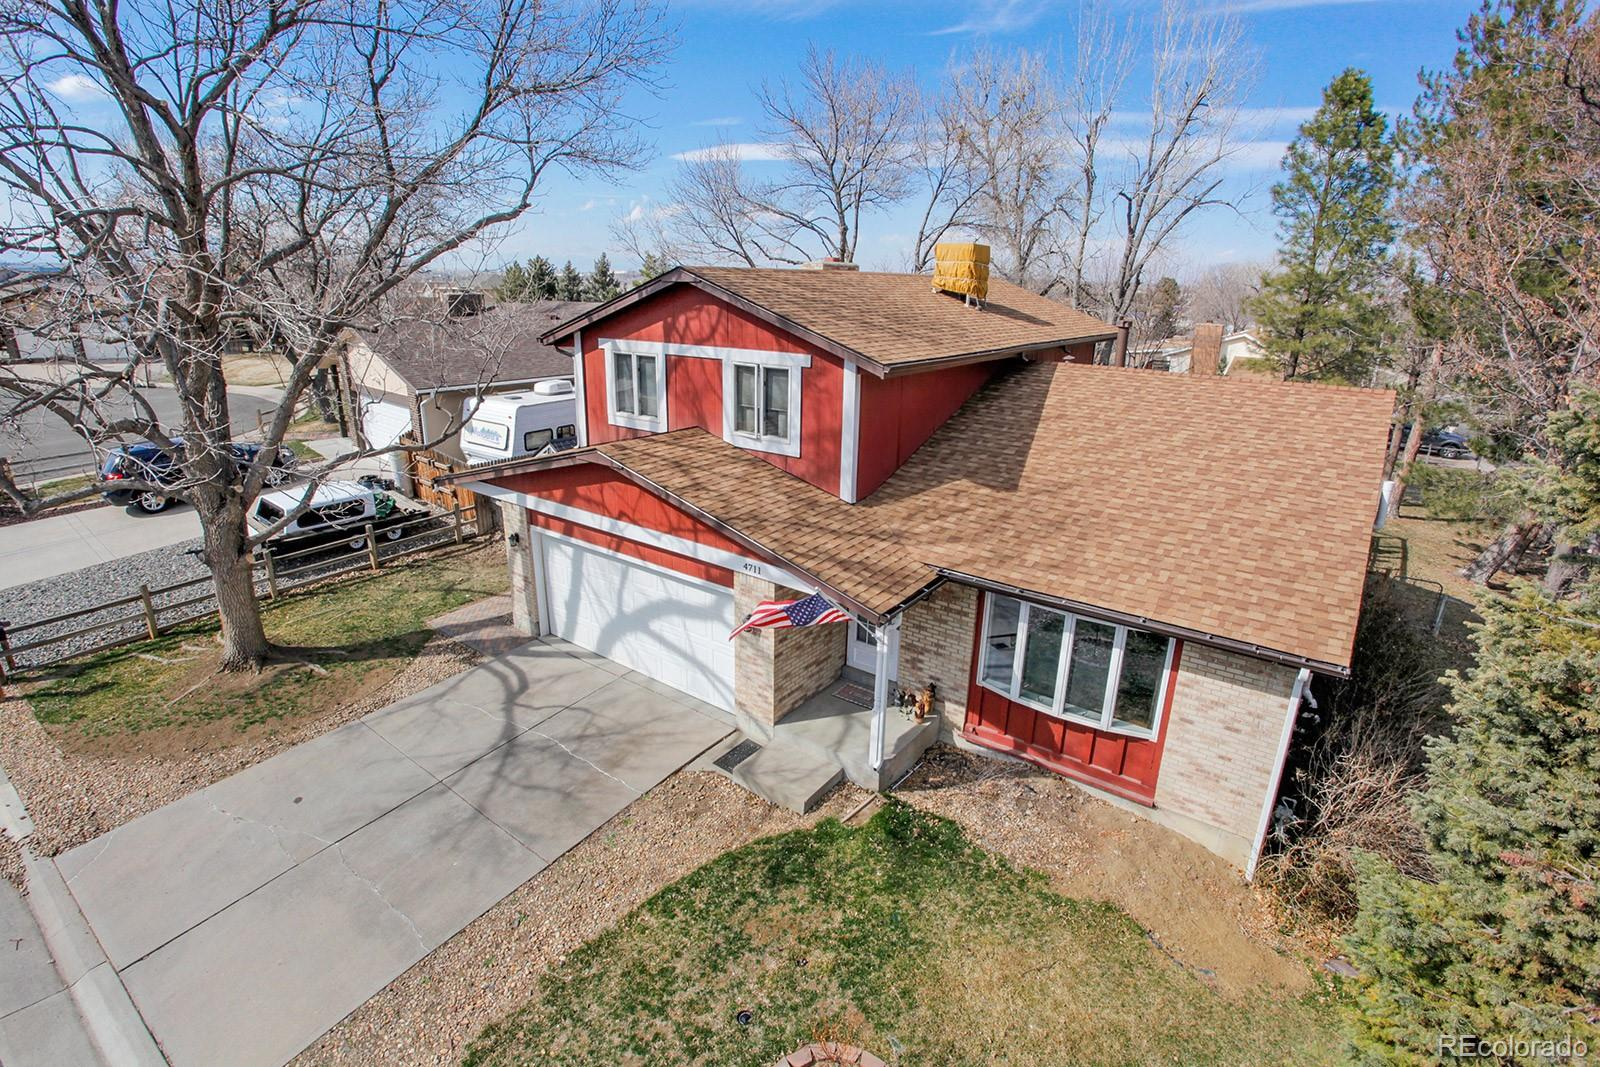 MLS# 2147328 - 1 - 4711 W 108th Place, Westminster, CO 80031